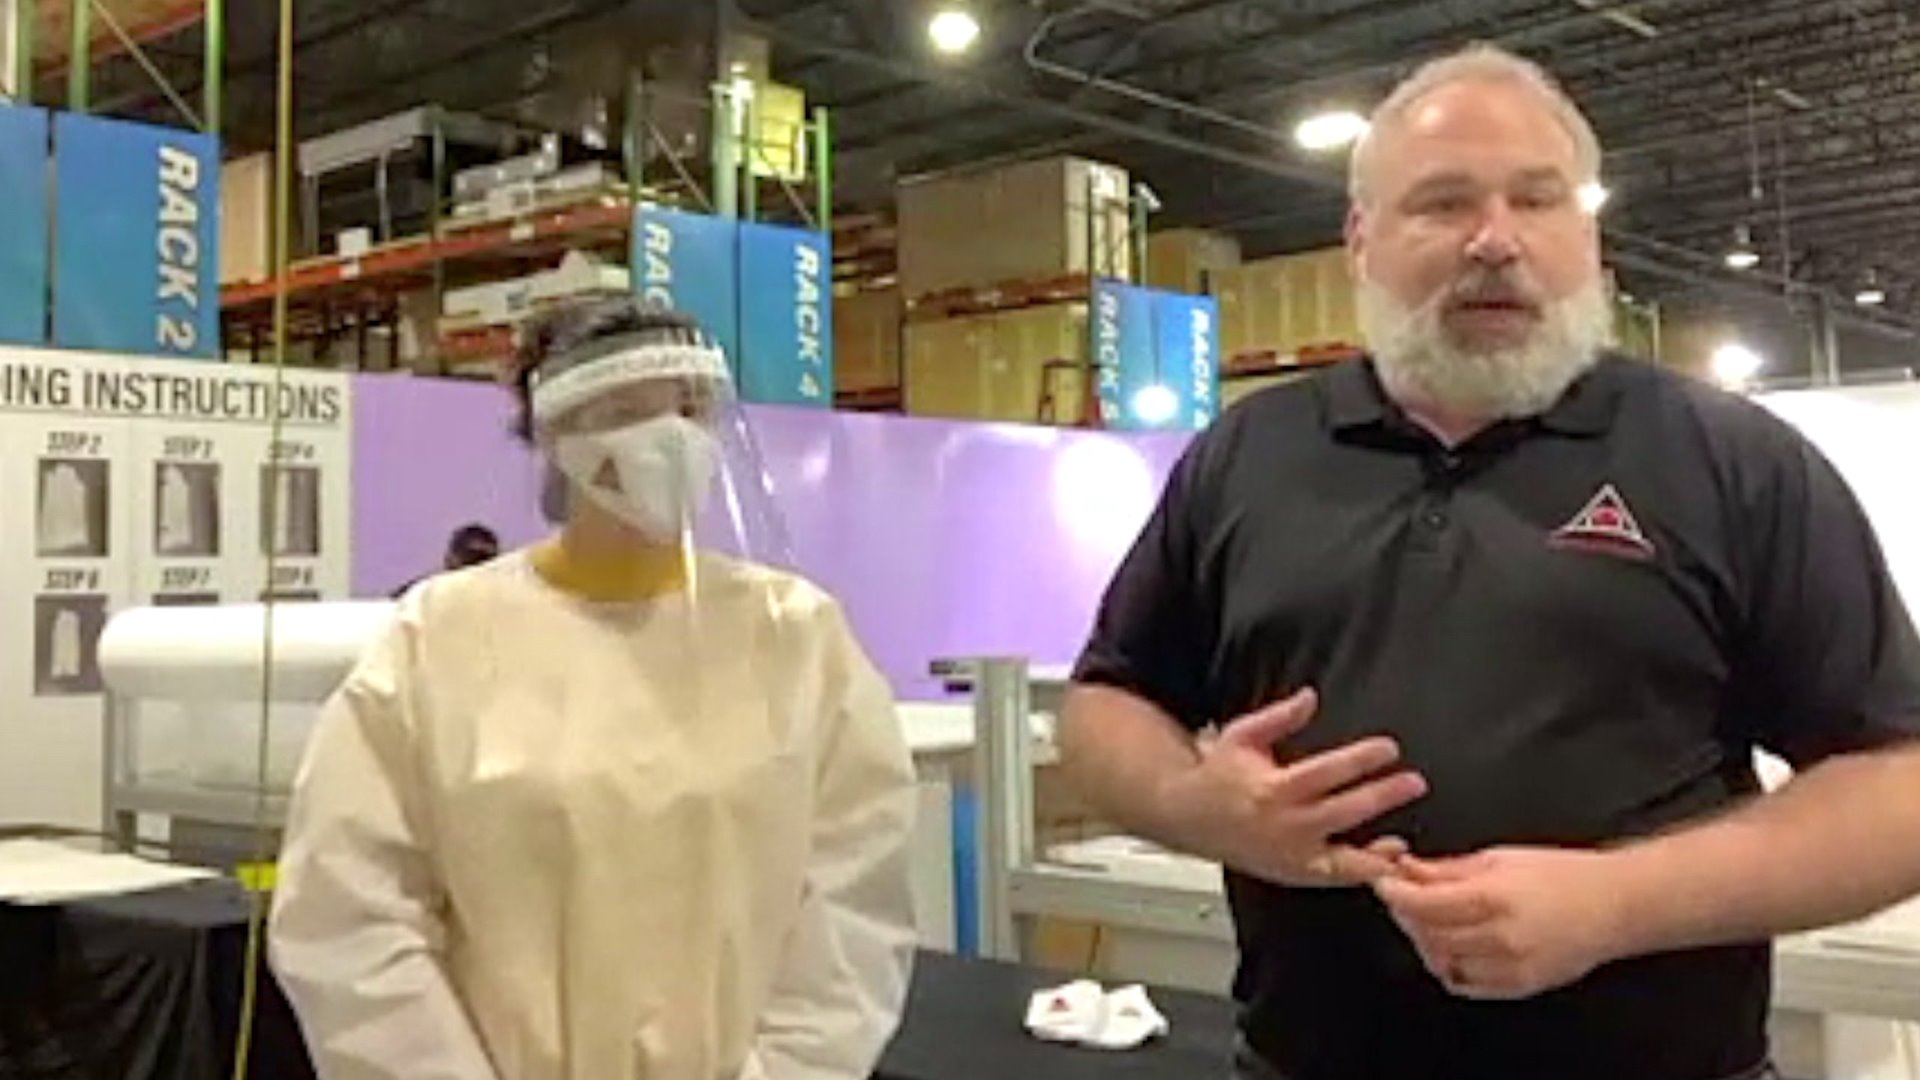 Greensboro company turns to making protective gear during pandemic